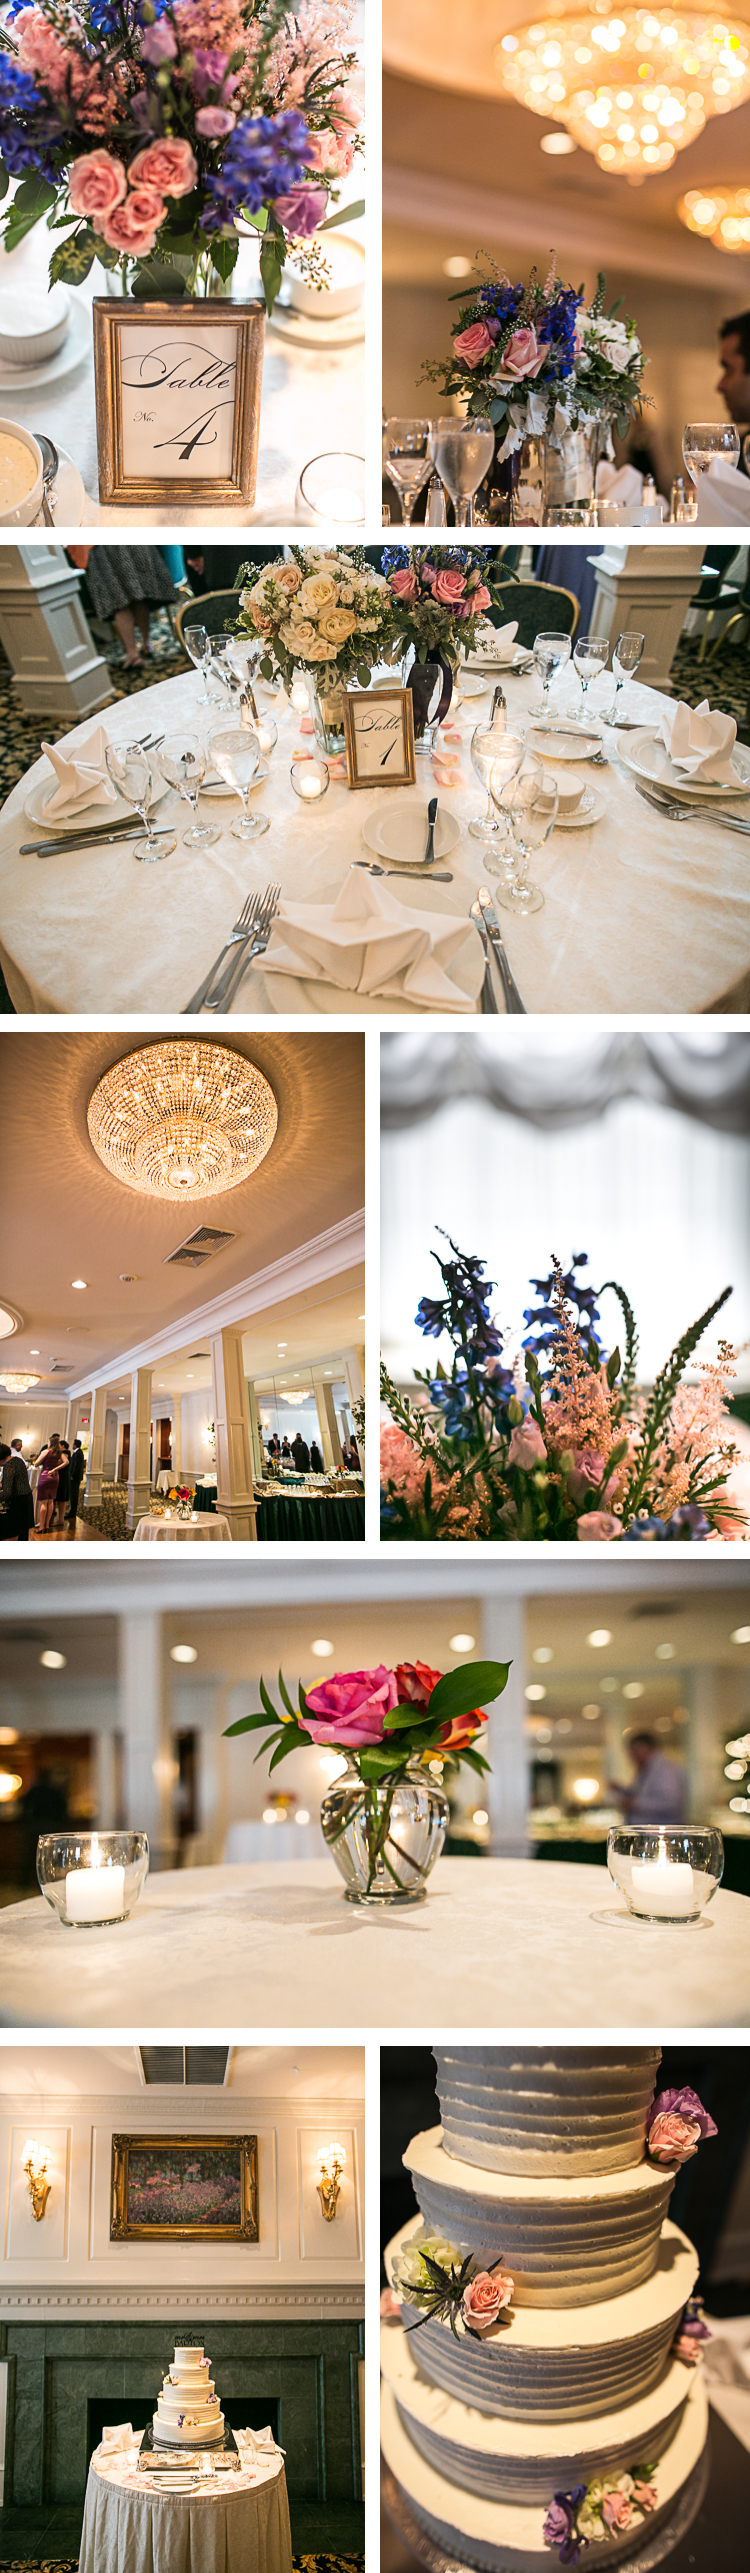 william penn inn_elegant summer wedding14_3